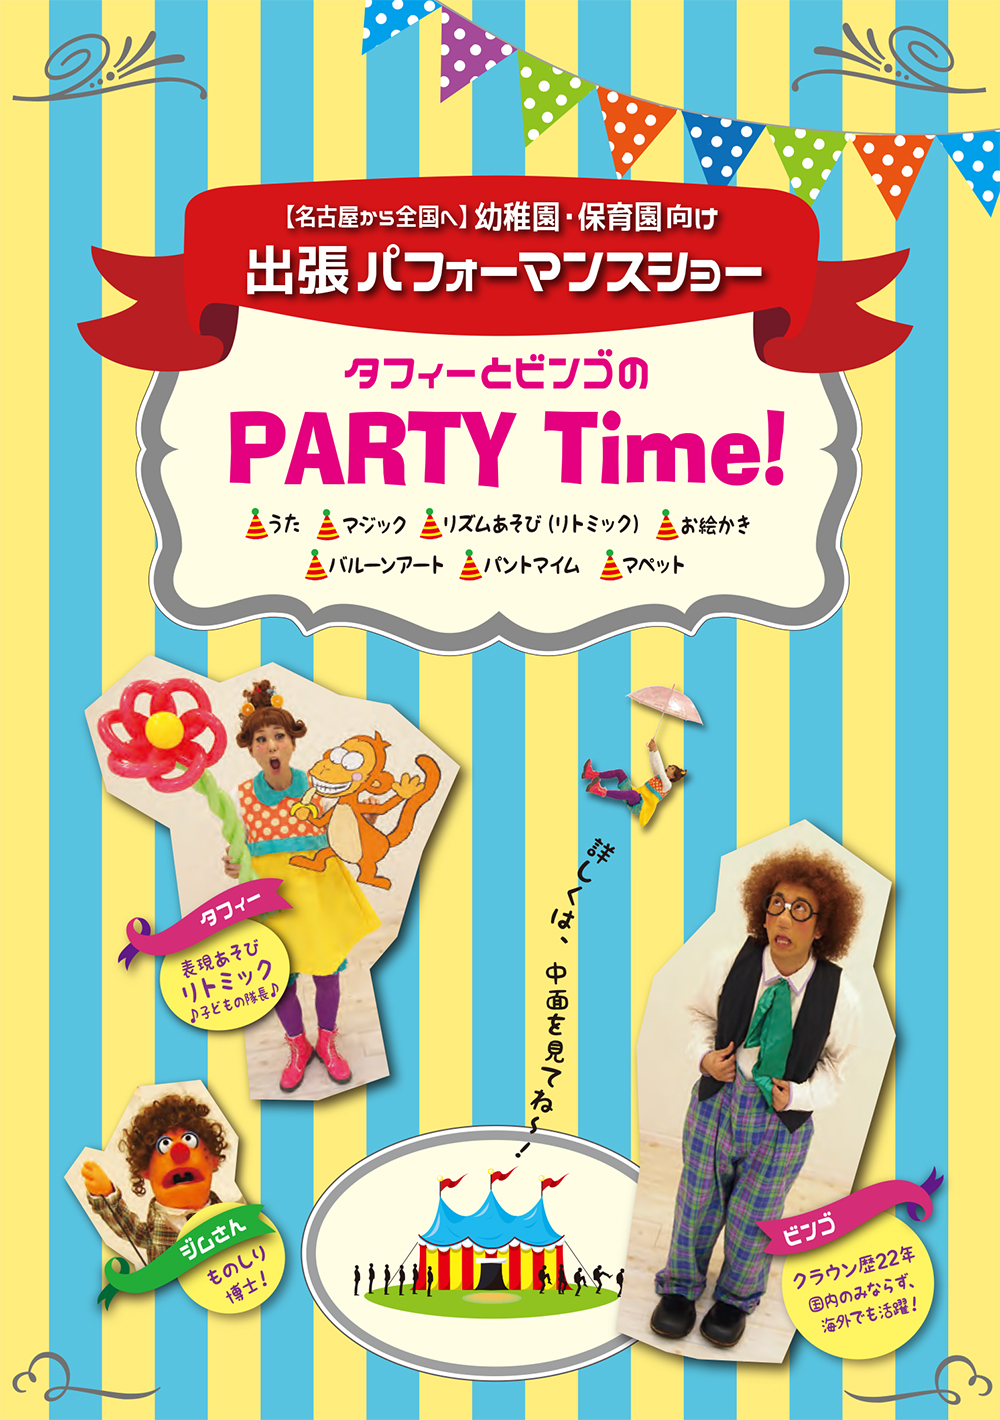 PARTY Time !!